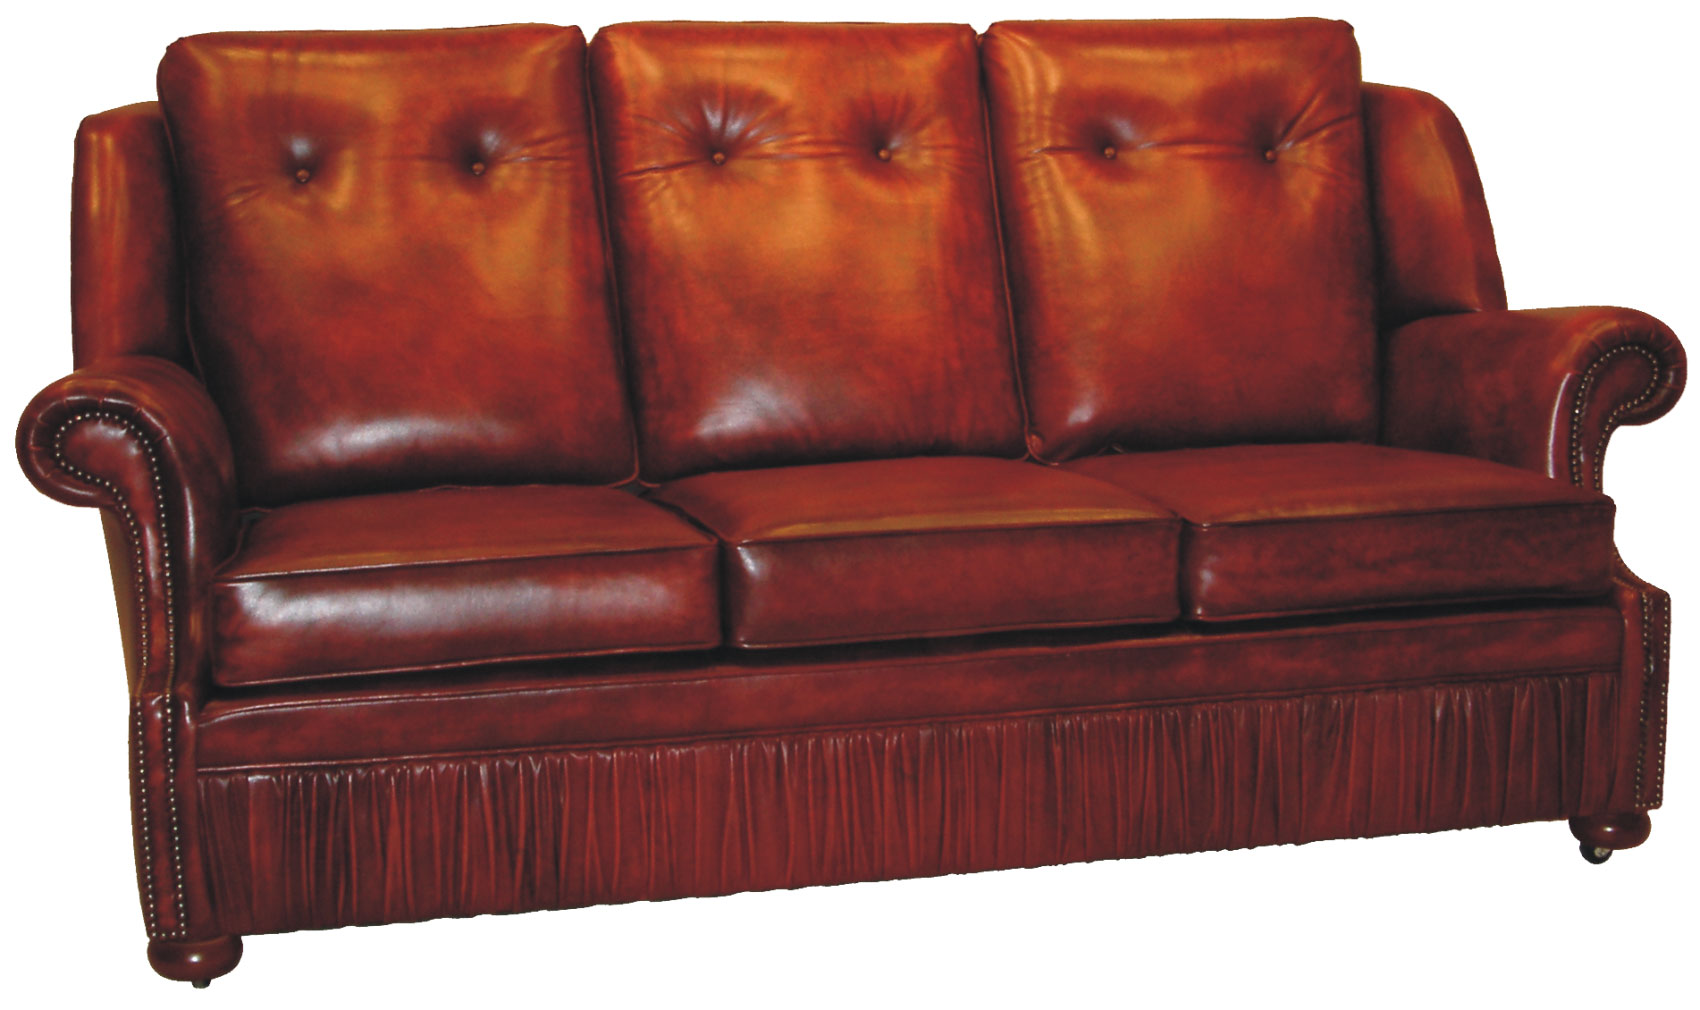 chichester original chesterfield sofa echtleder. Black Bedroom Furniture Sets. Home Design Ideas